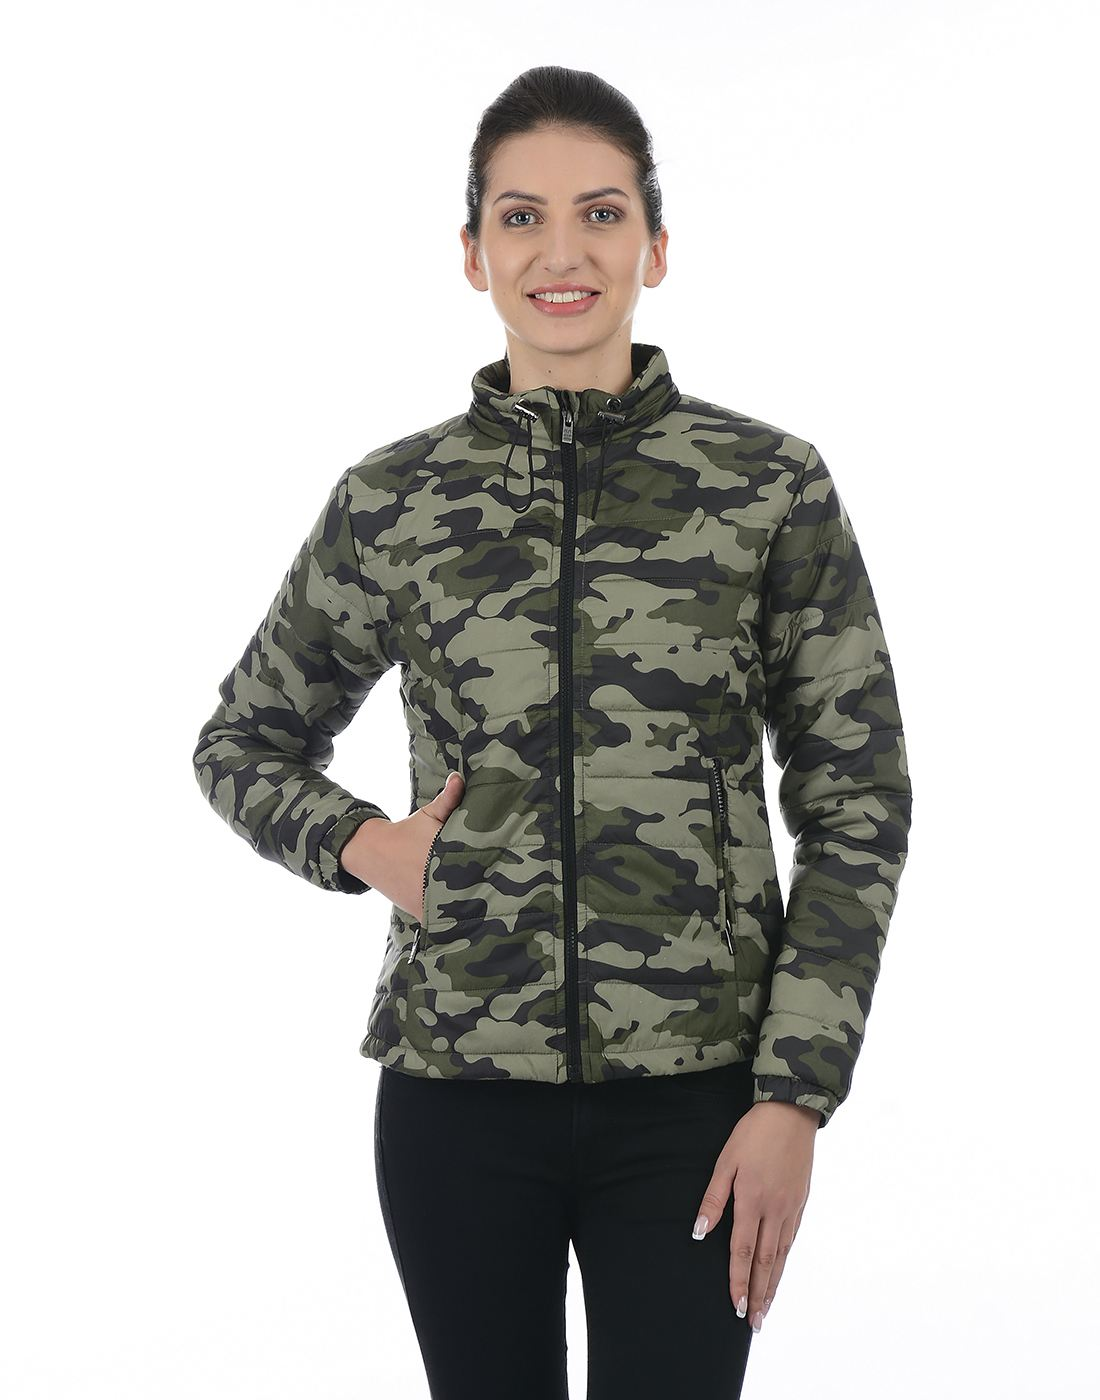 Pepe Jeans Women Utility or Military Inspired Jacket